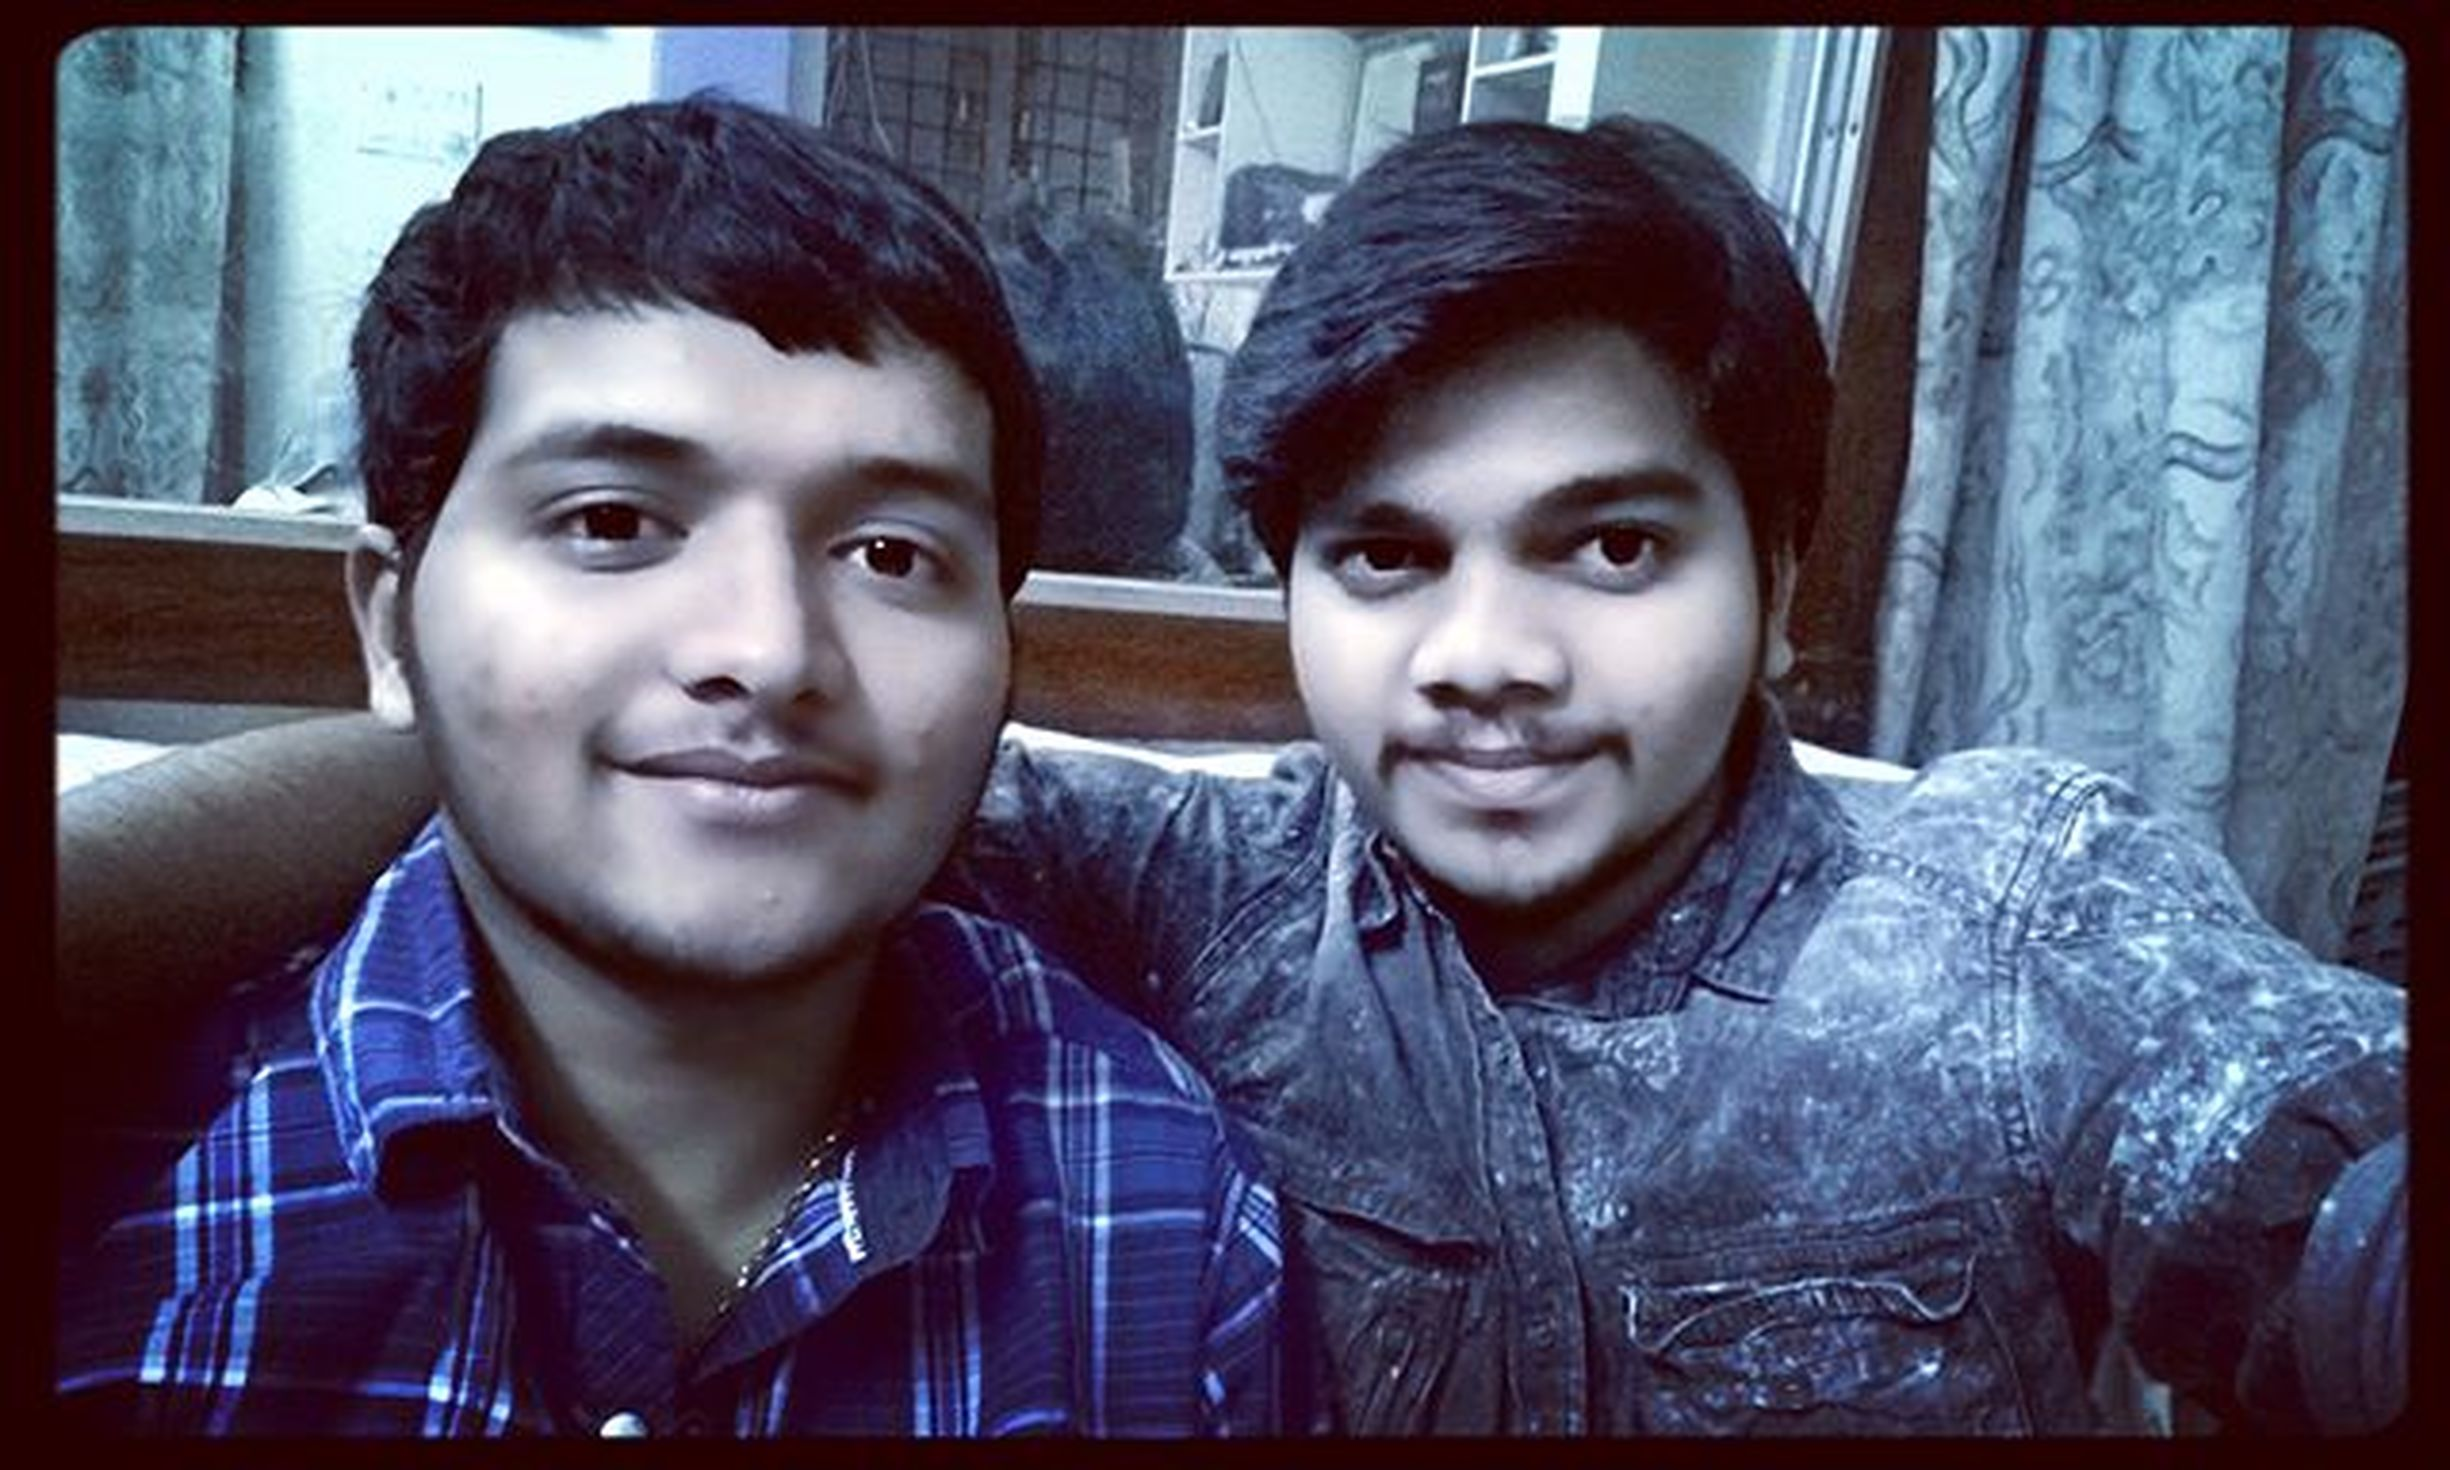 Adaywitholdfriend Movies Biryani Oldtalks RoamingAround And Finallyaselfietogether Cool 😎 GoodTimes Madememories 🙂😀😁